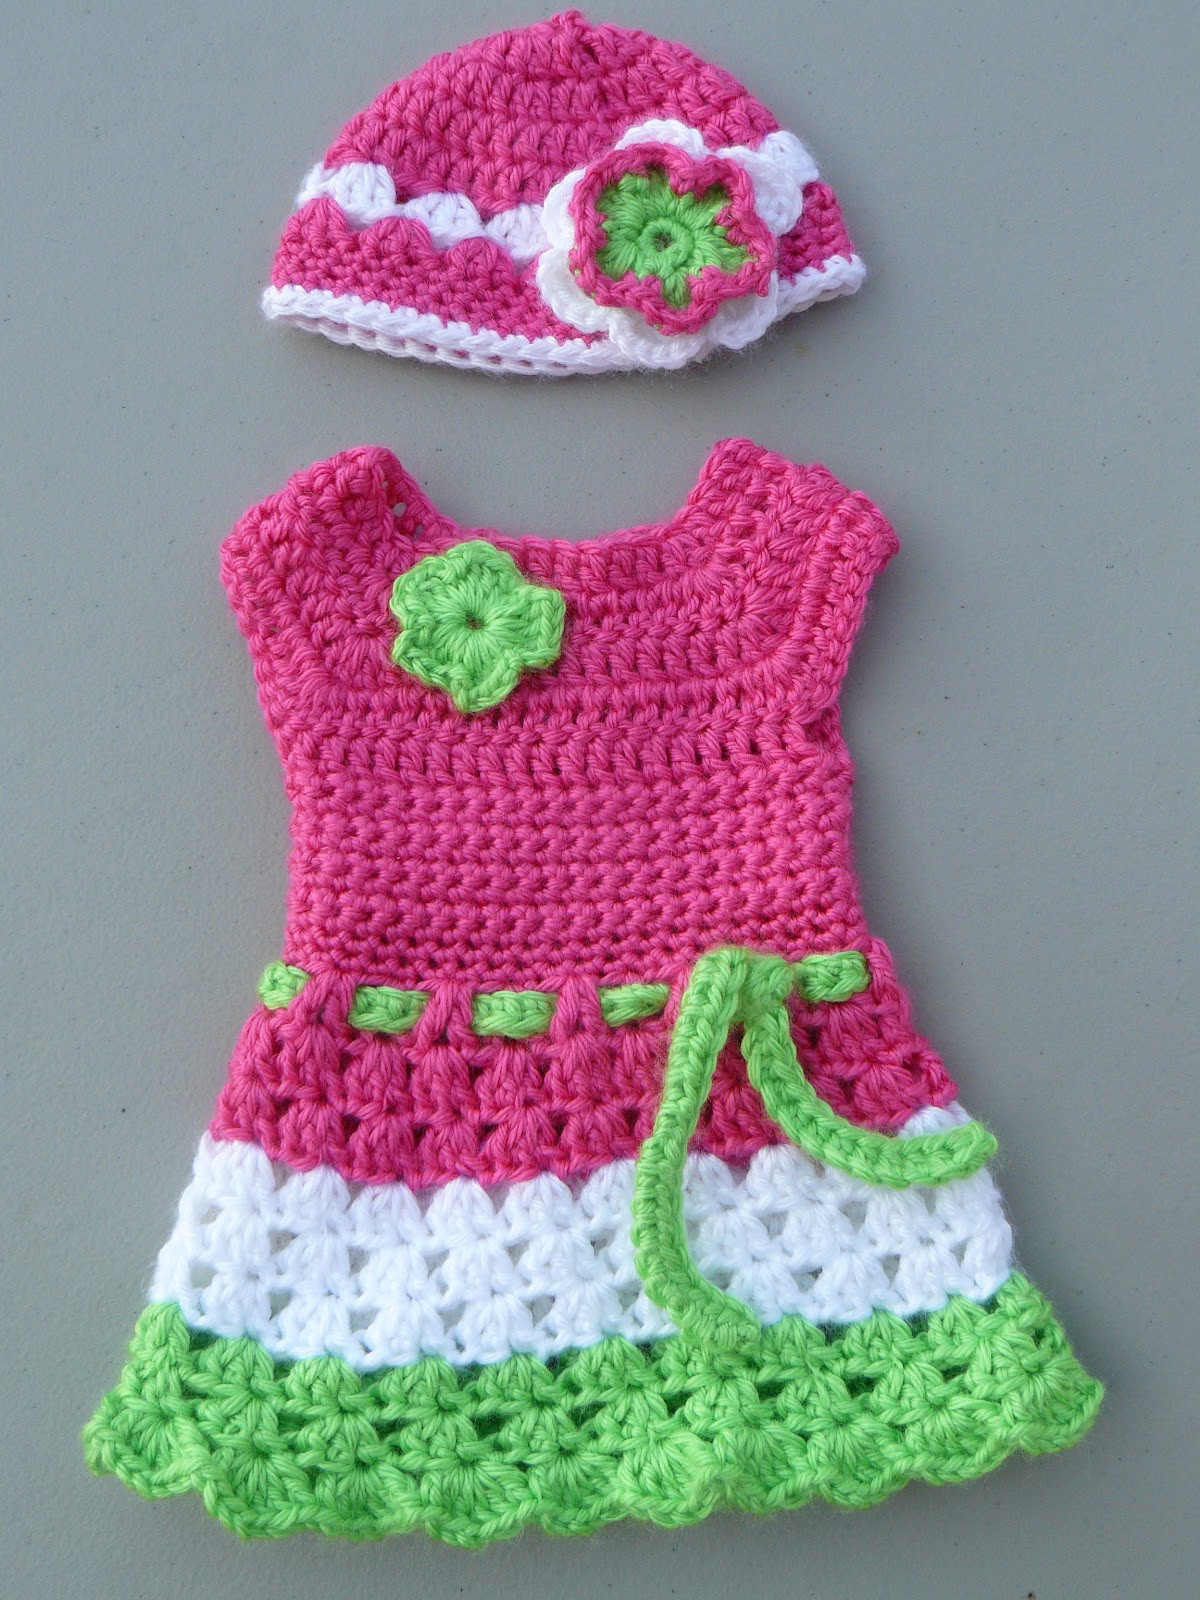 1000 images about Crochet knit FREE AG patterns on